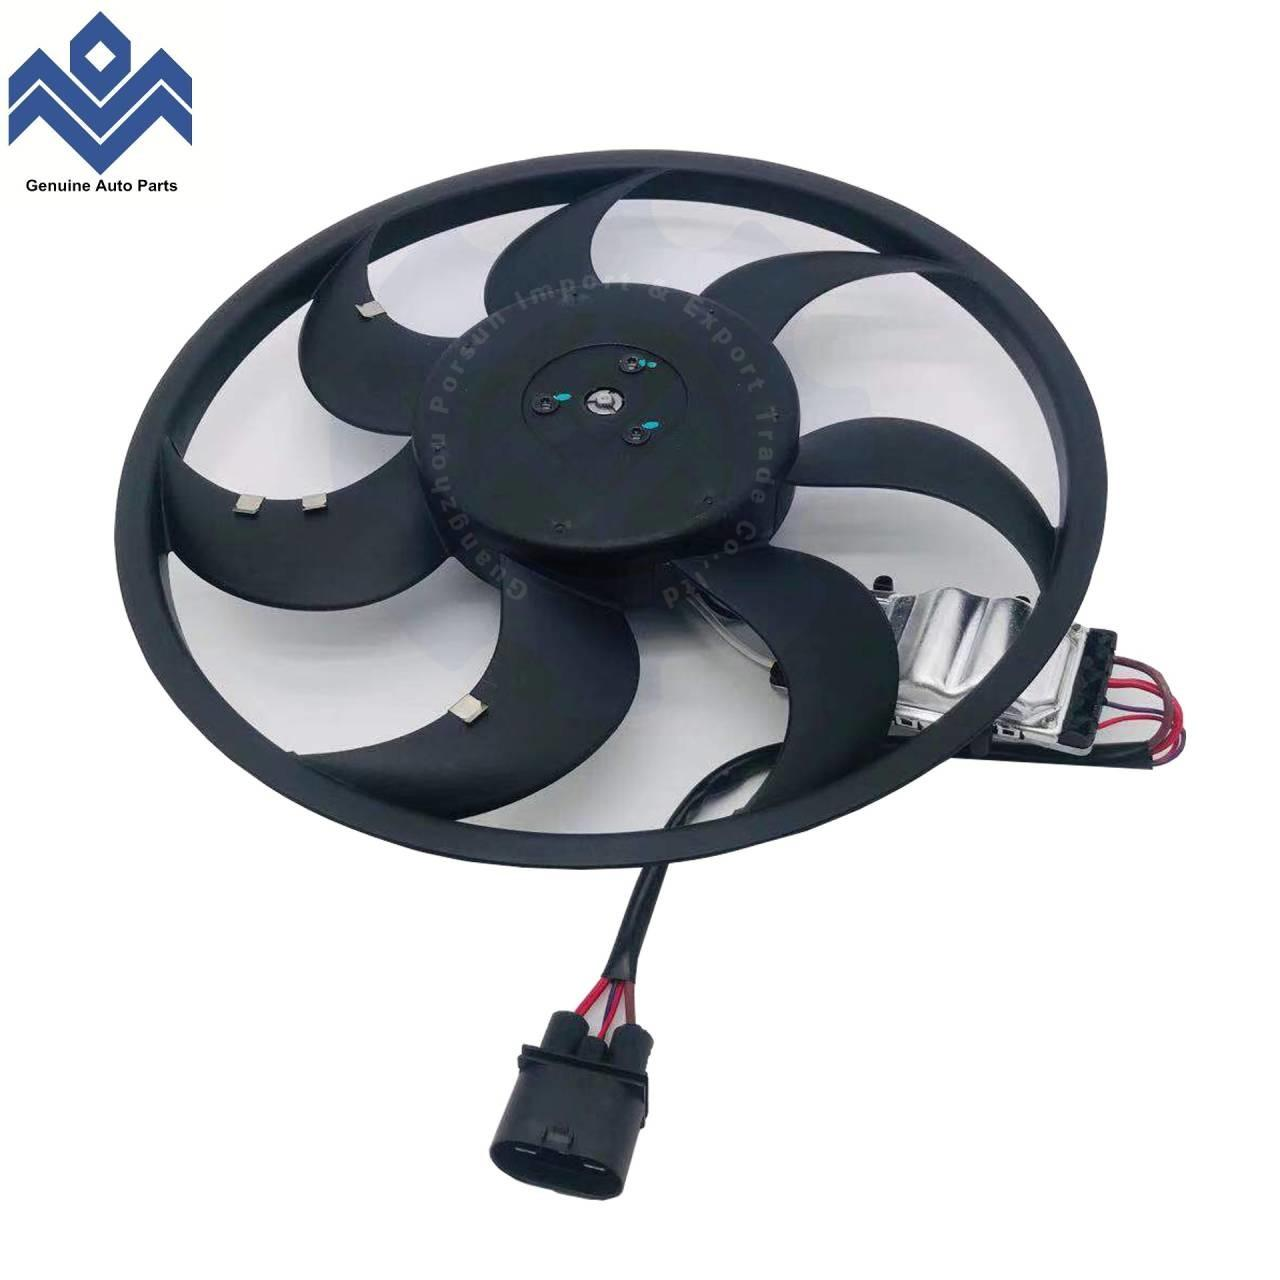 China Engine Radiator Cooling Fan Assembly Fits VW Touareg  Audi Q7 7L0959455G 995 624 136 01 on sale